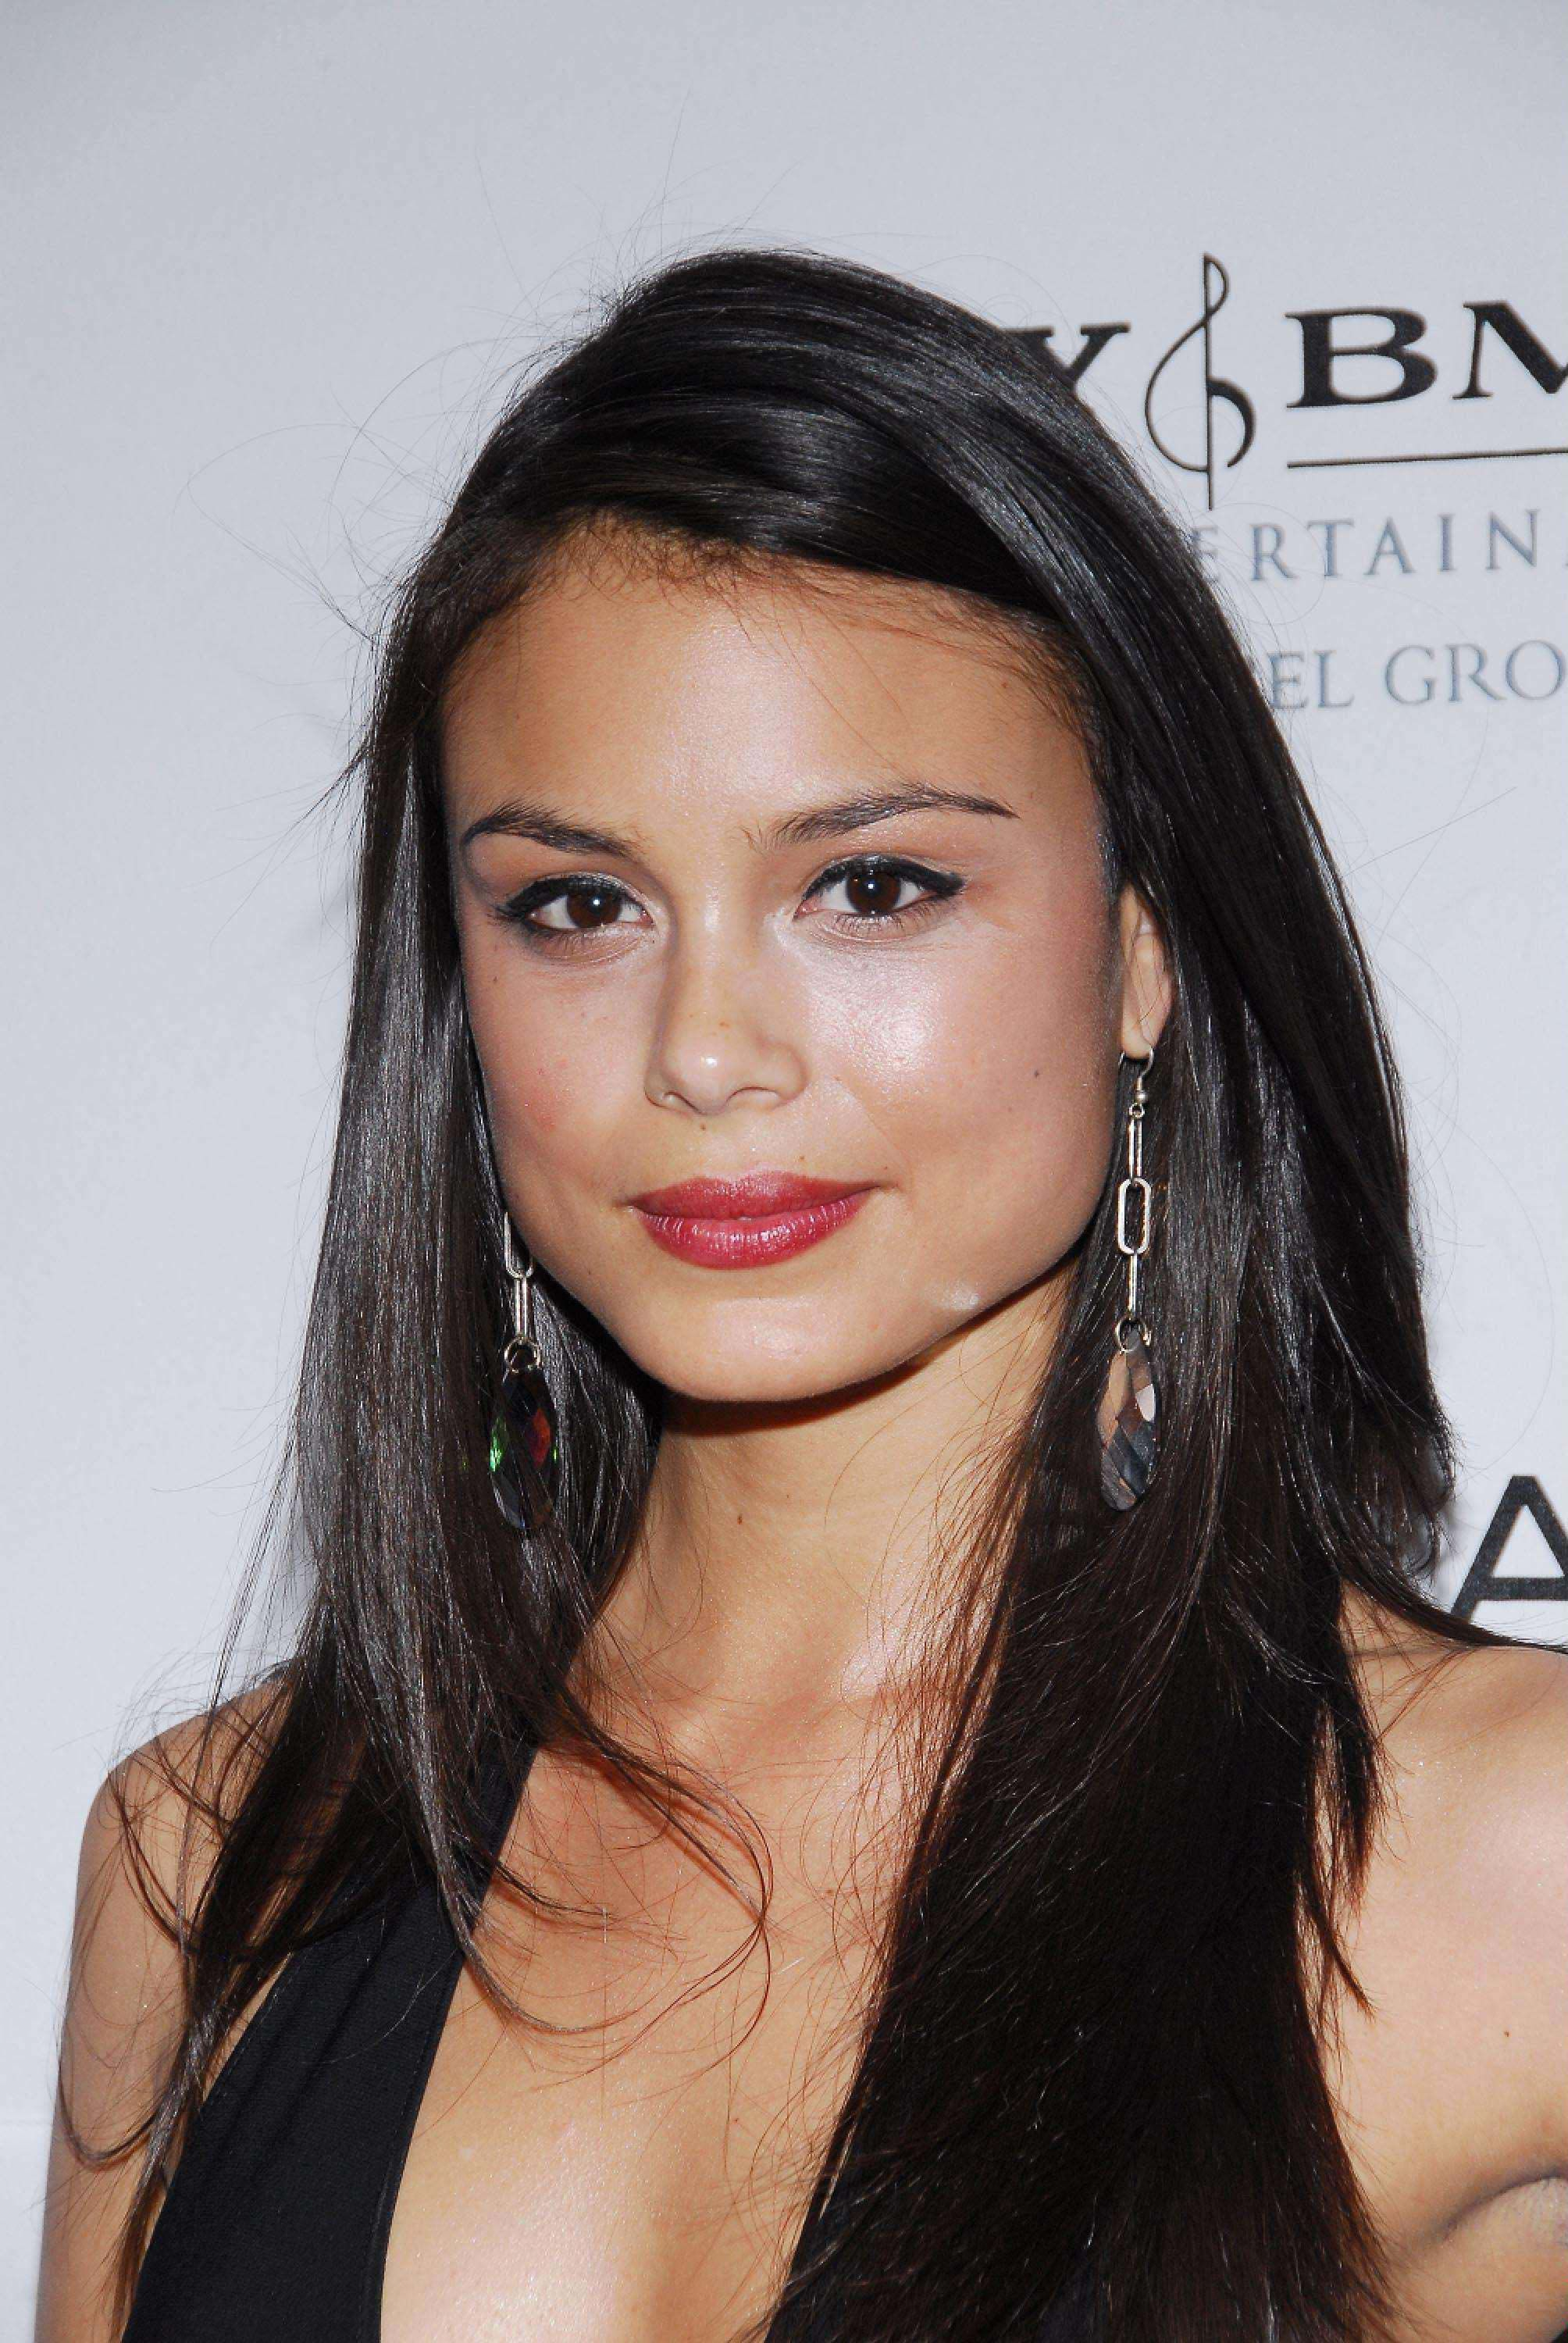 Young Nathalie Kelley nudes (14 foto and video), Topless, Paparazzi, Twitter, panties 2017